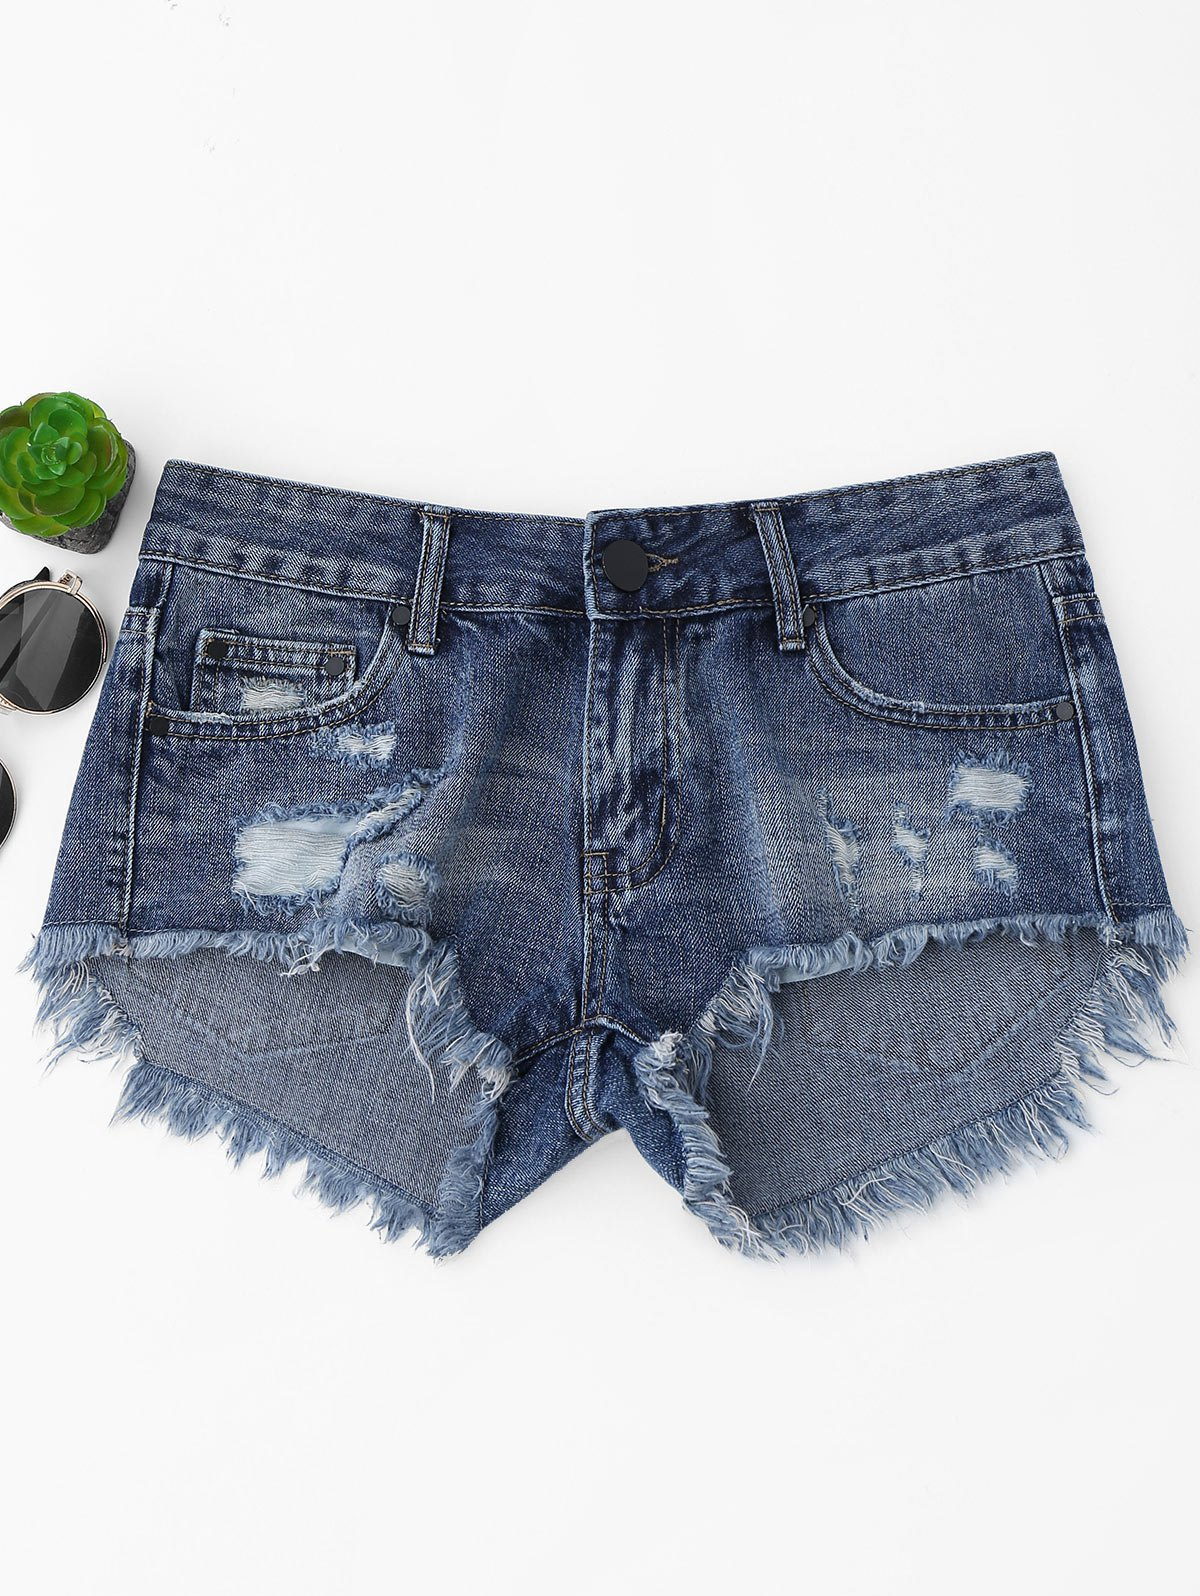 Cutoffs Ripped High Low Denim Shorts 214592002